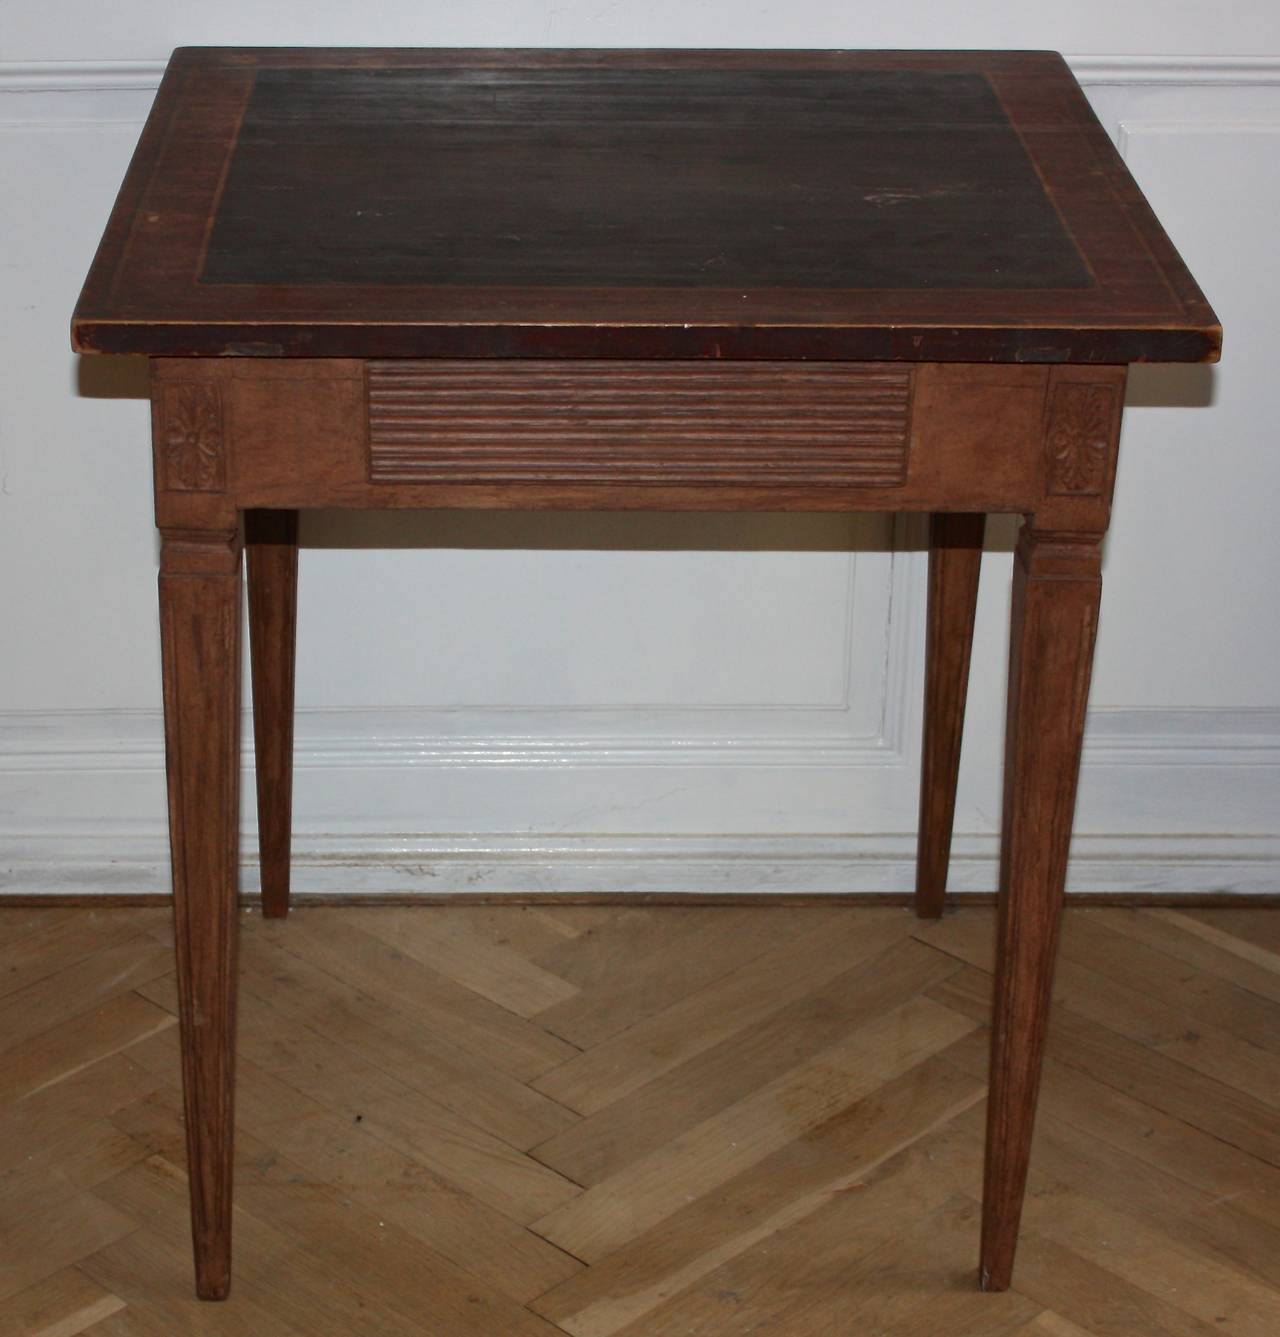 Th century gustavian side table or small writing desk at